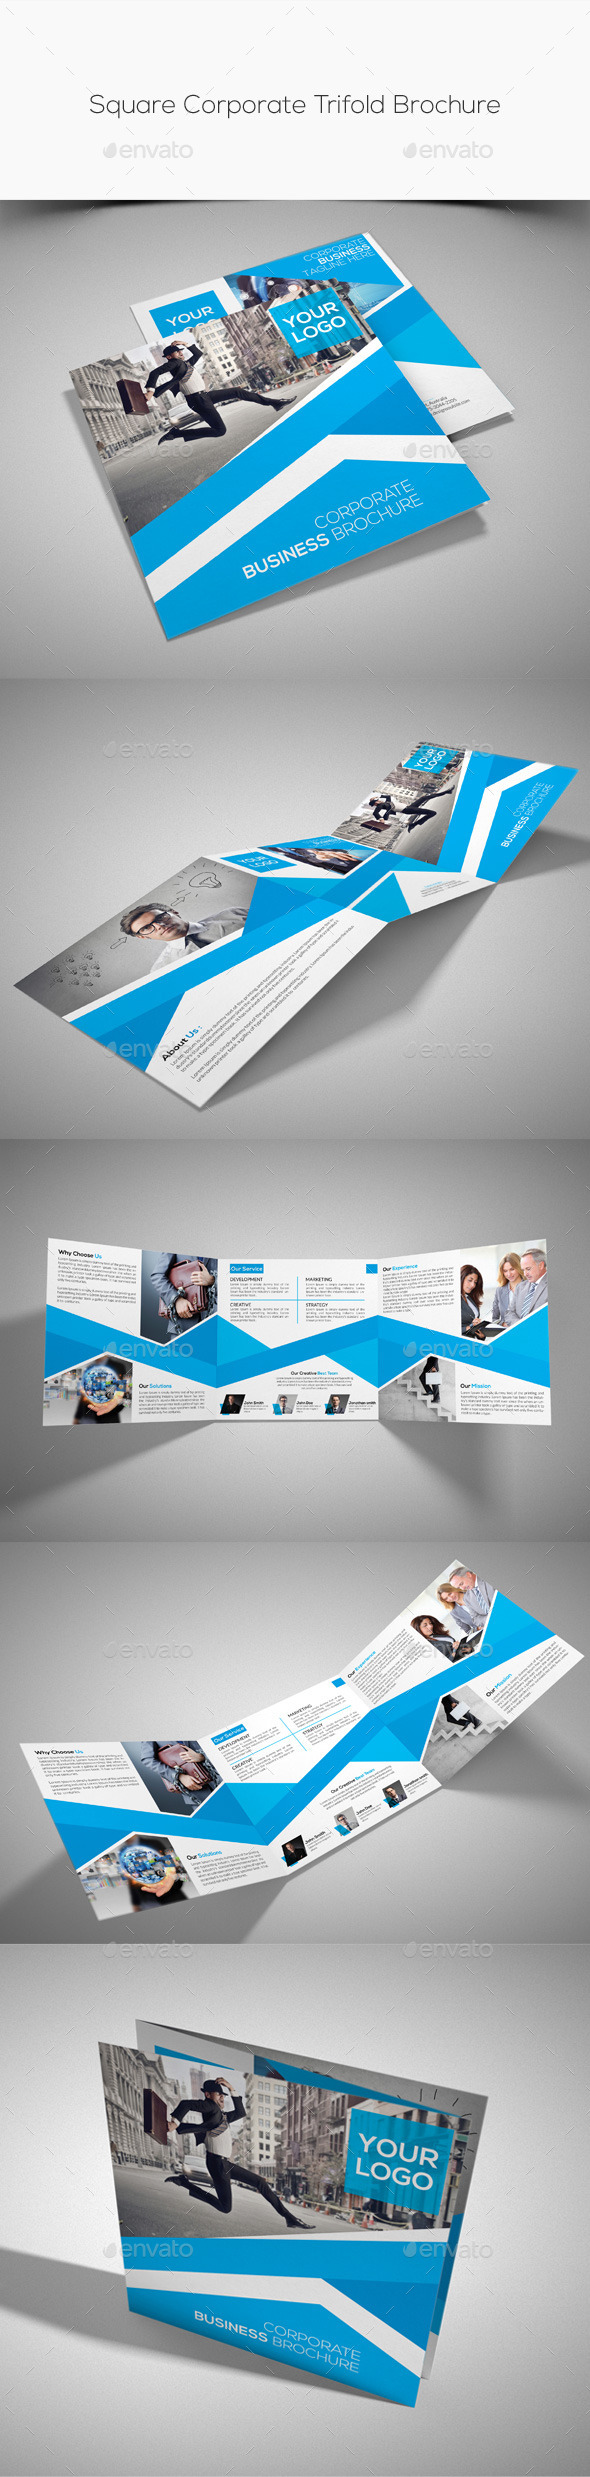 GraphicRiver Square Corporate Trifold Brochure 10427246